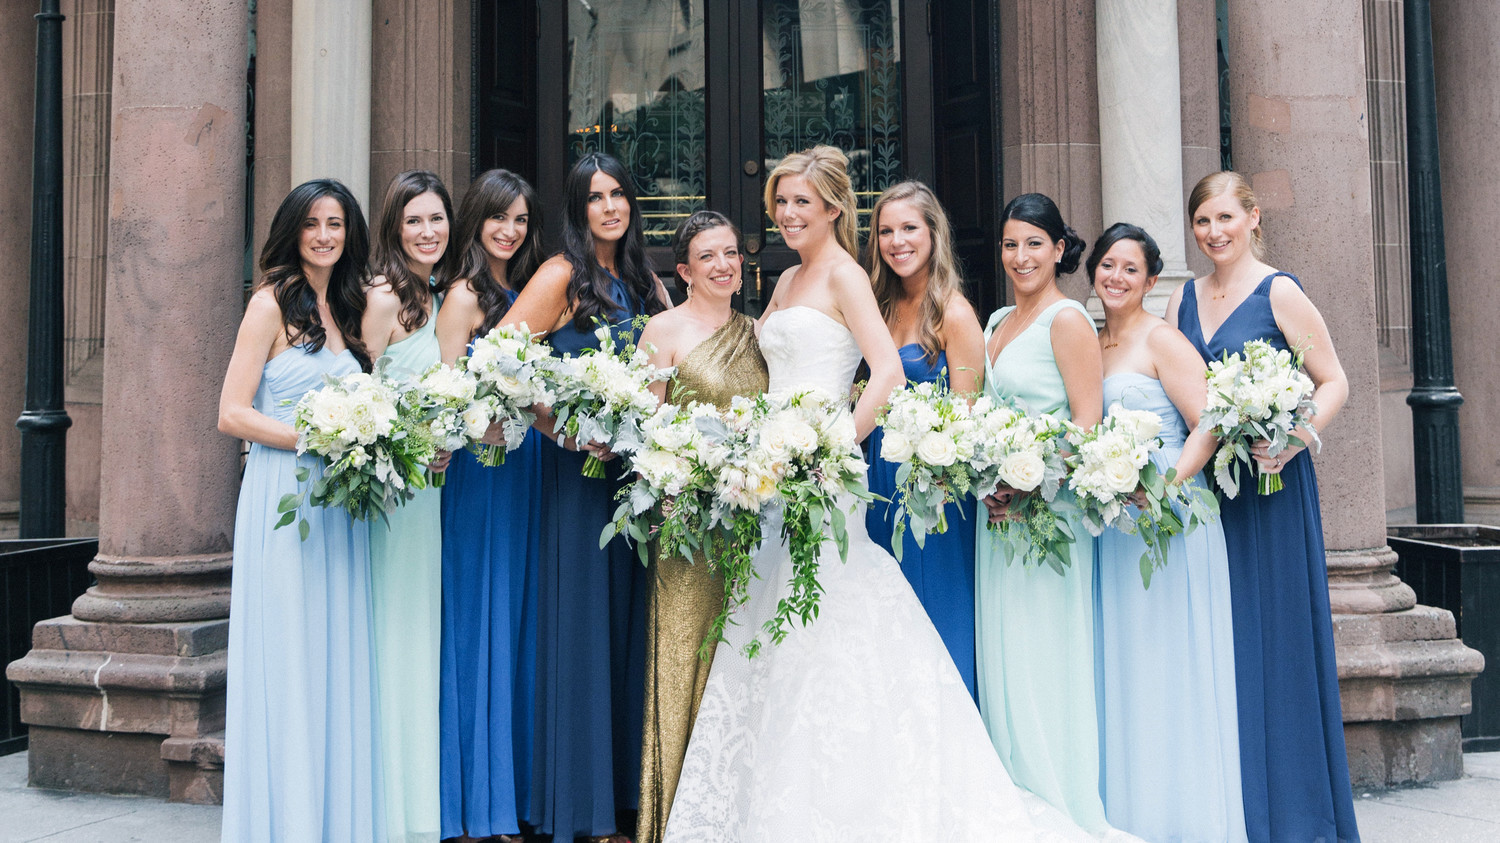 41 Reasons To Love The Mismatched Bridesmaids Look Martha Weddings